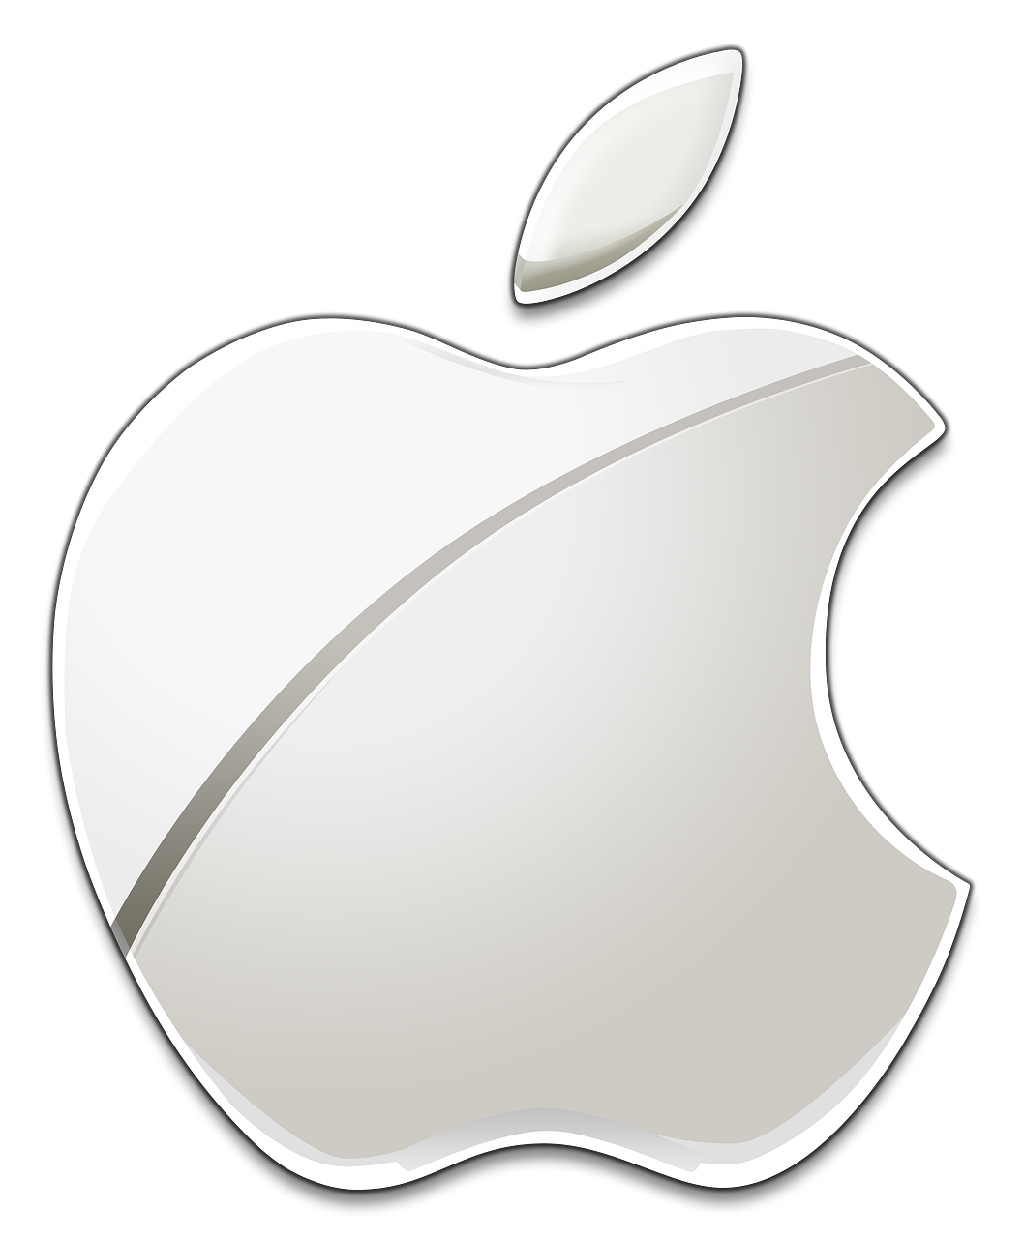 white apple logo png